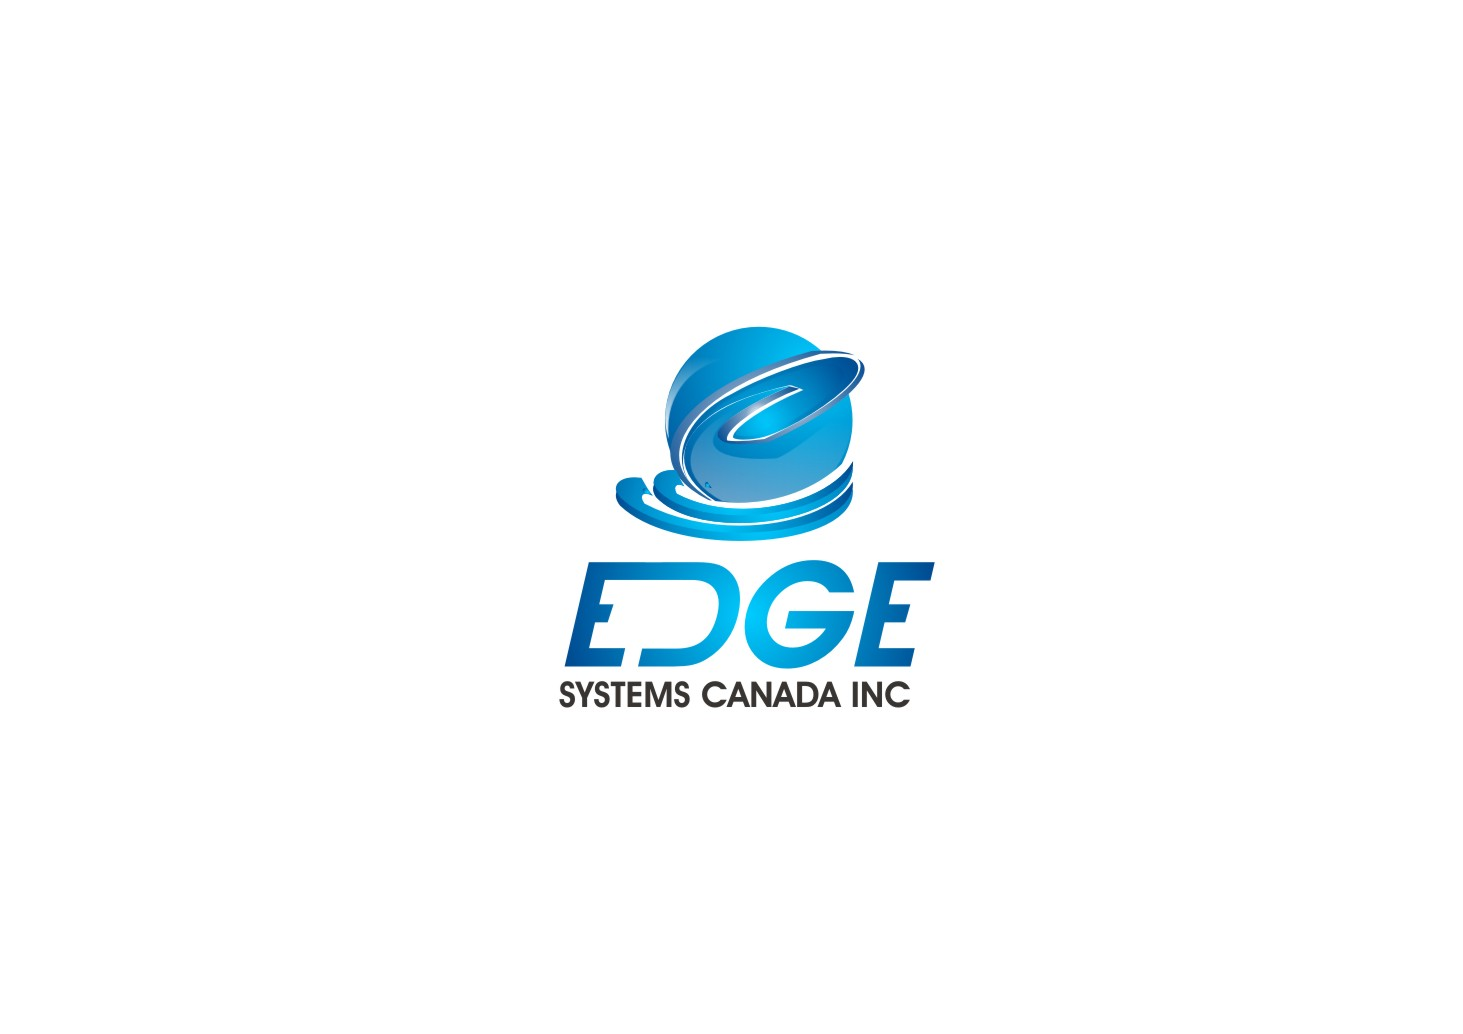 Logo Design by yanxsant - Entry No. 93 in the Logo Design Contest New Logo Design for Edge Systems Canada Inc.